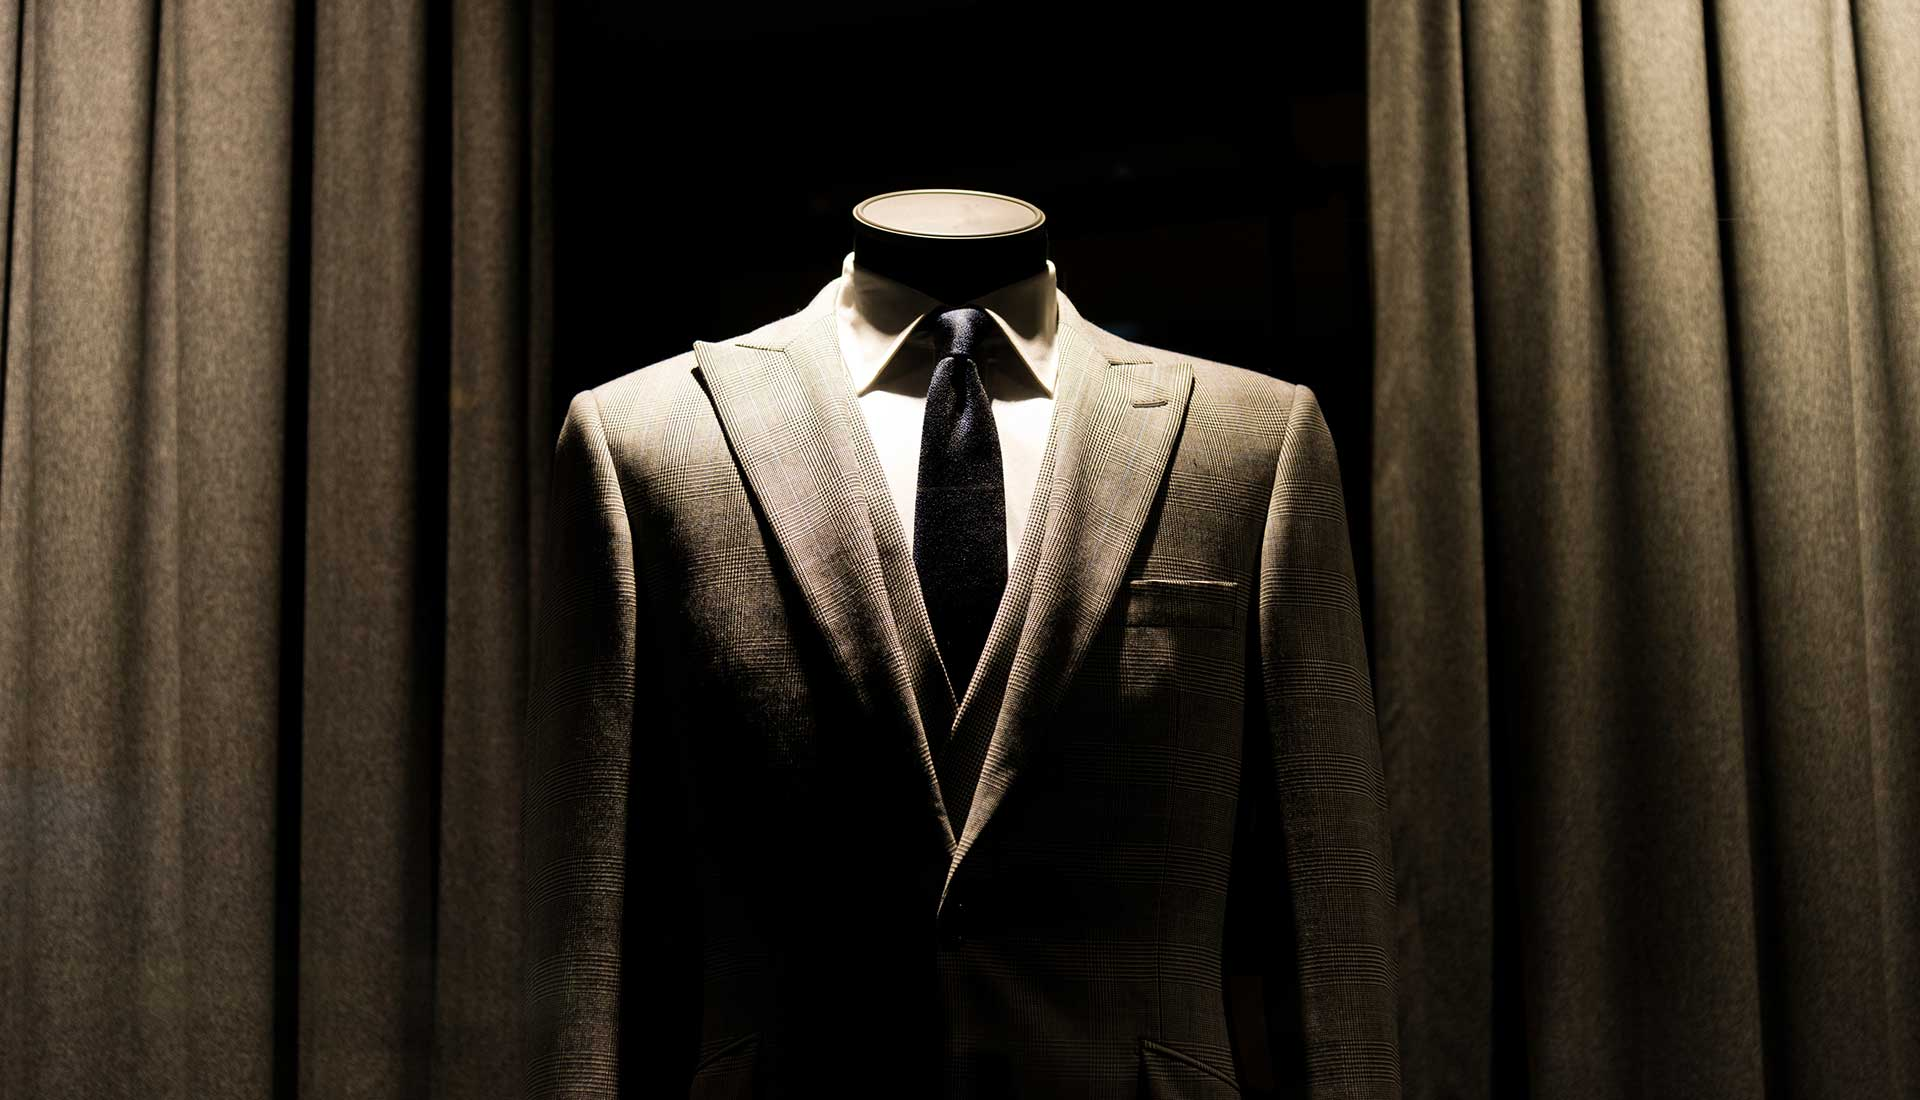 Serious Clothing. Exceptional Style.